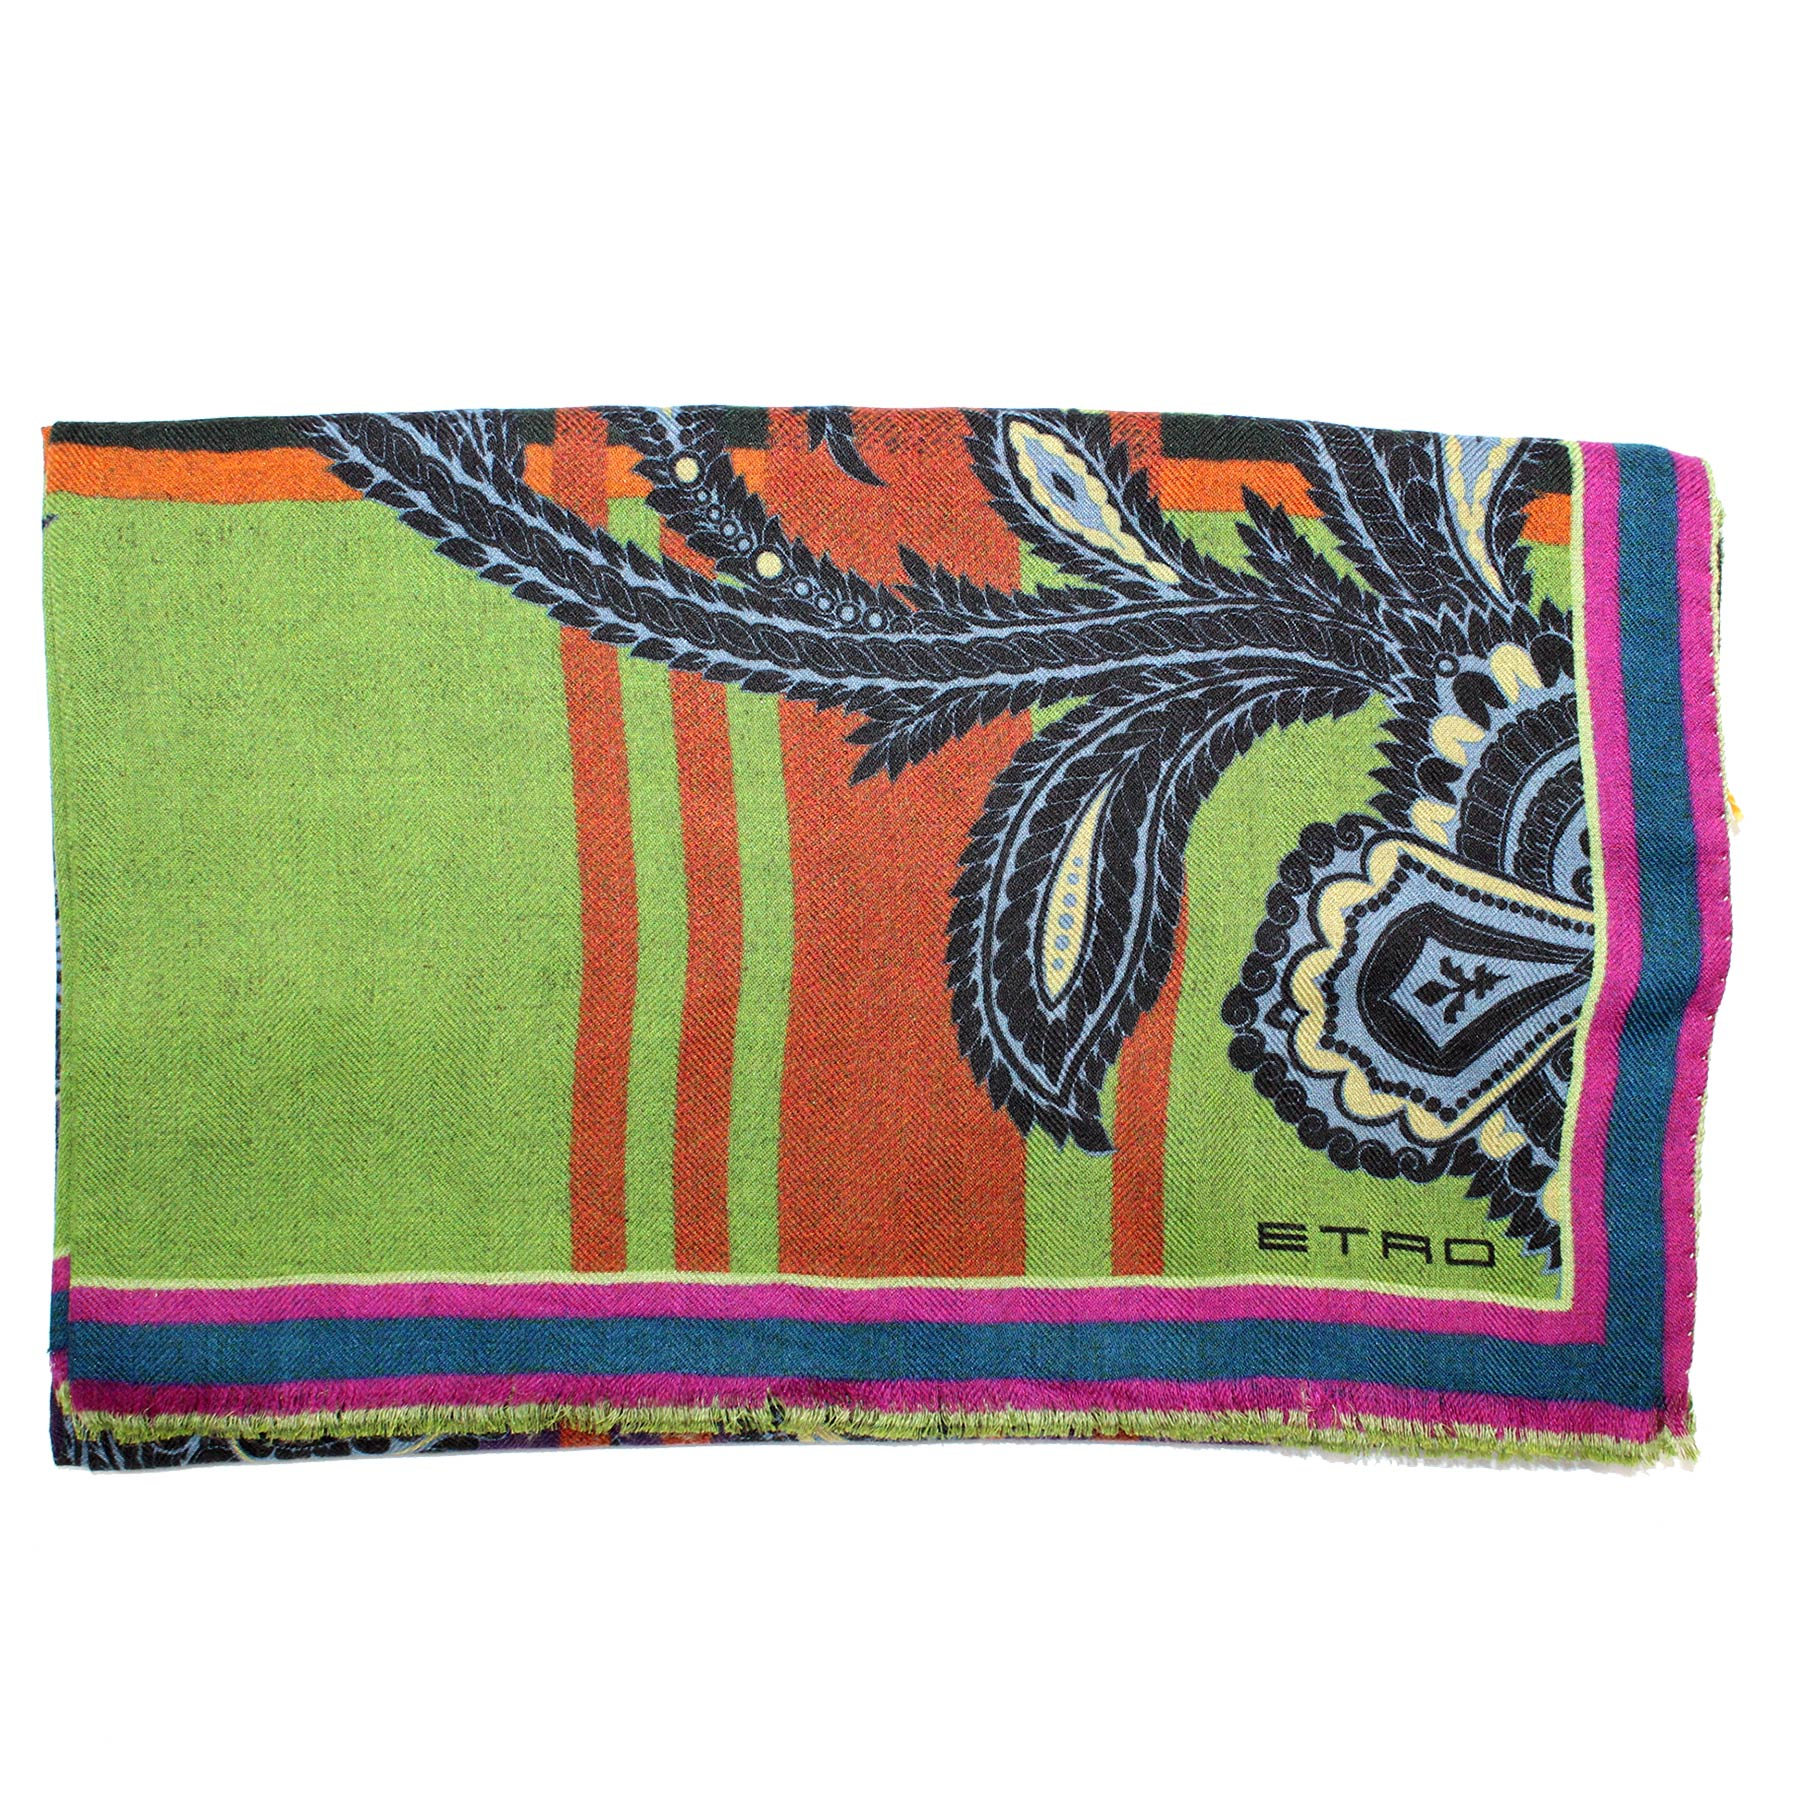 Etro Scarf Olive Purple Rust Orange Design Women Collection - Modal Cashmere Shawl SALE